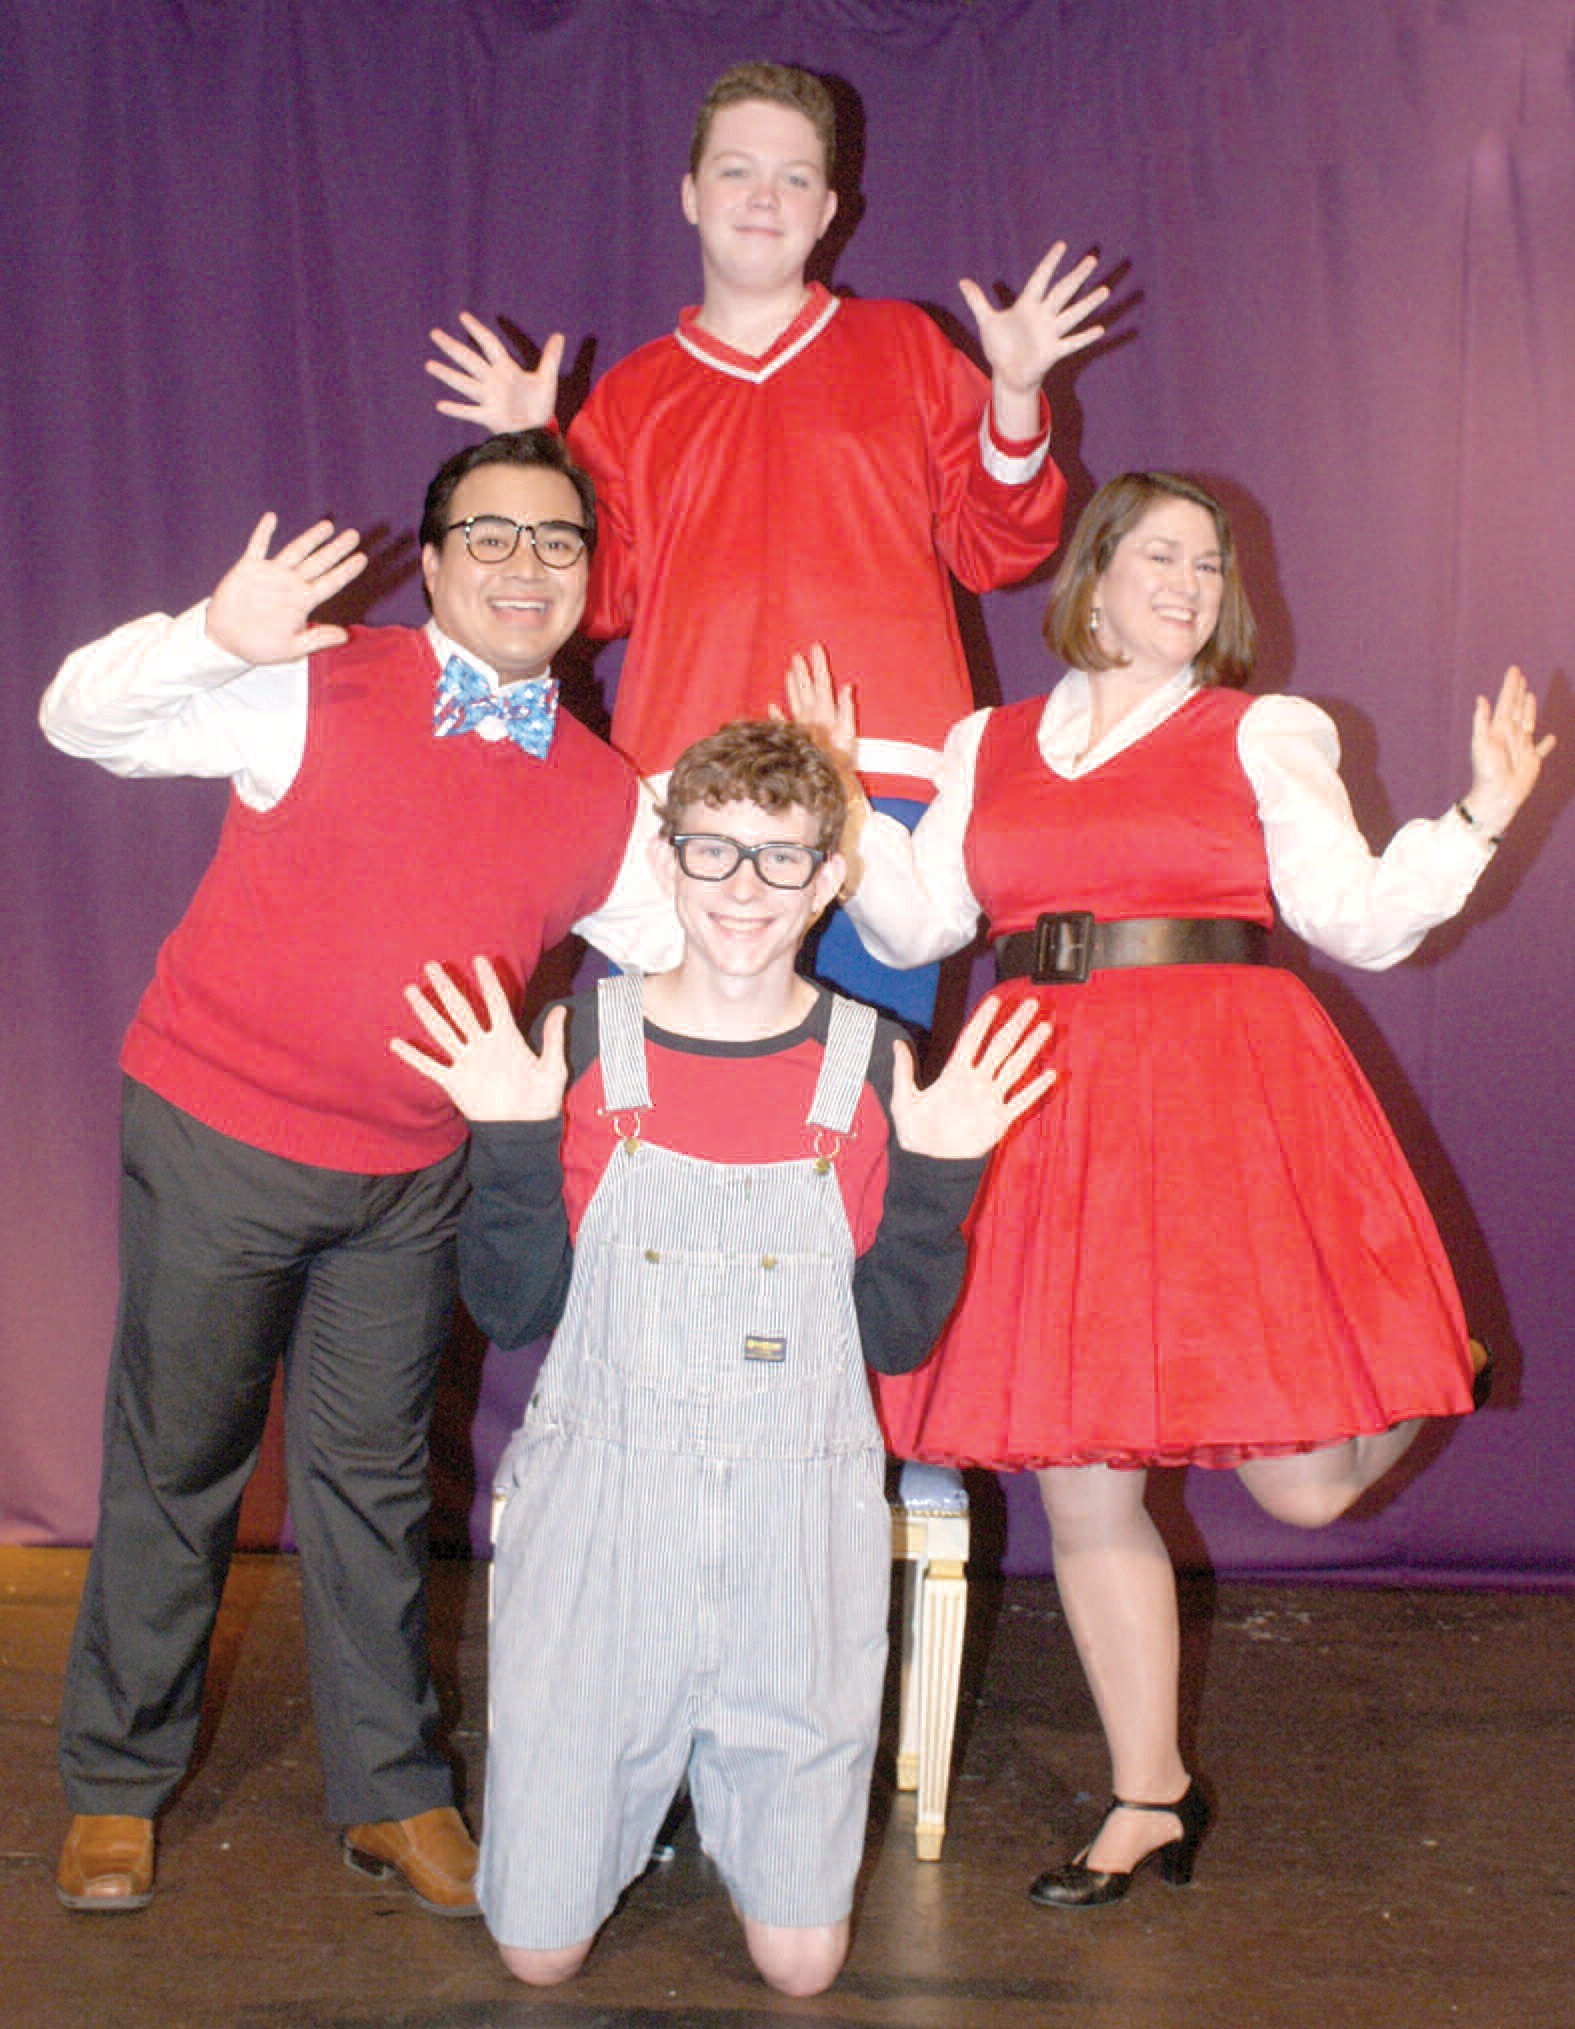 Meet the Lambchops - clockwise from top: Anthony Harvey, Diane Gilbert, Riley Smith, and Julian DeLeon.